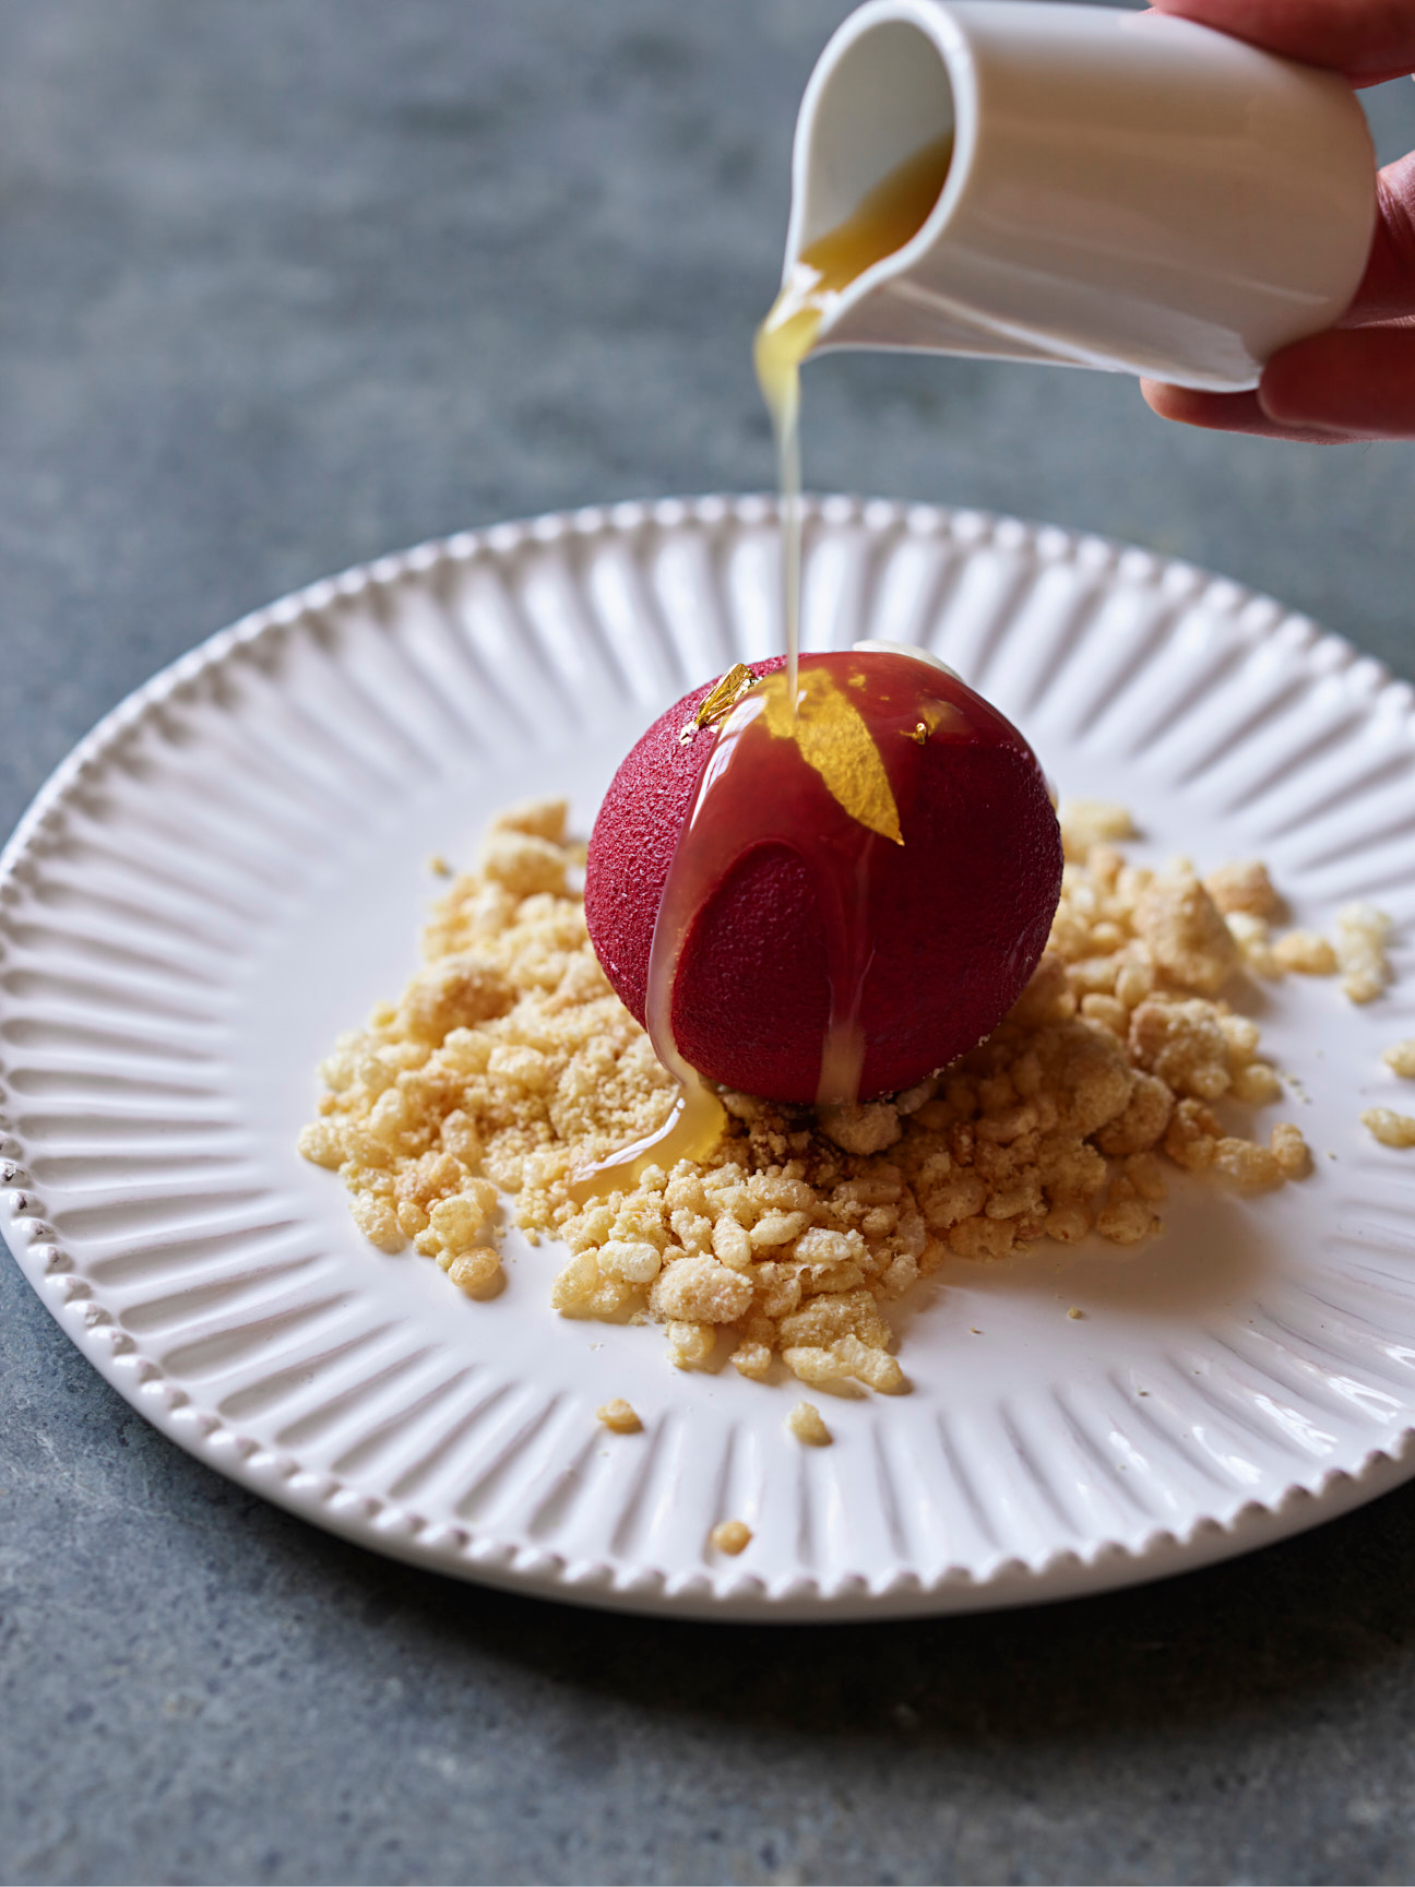 Ormer Mayfair's signature apple crumble